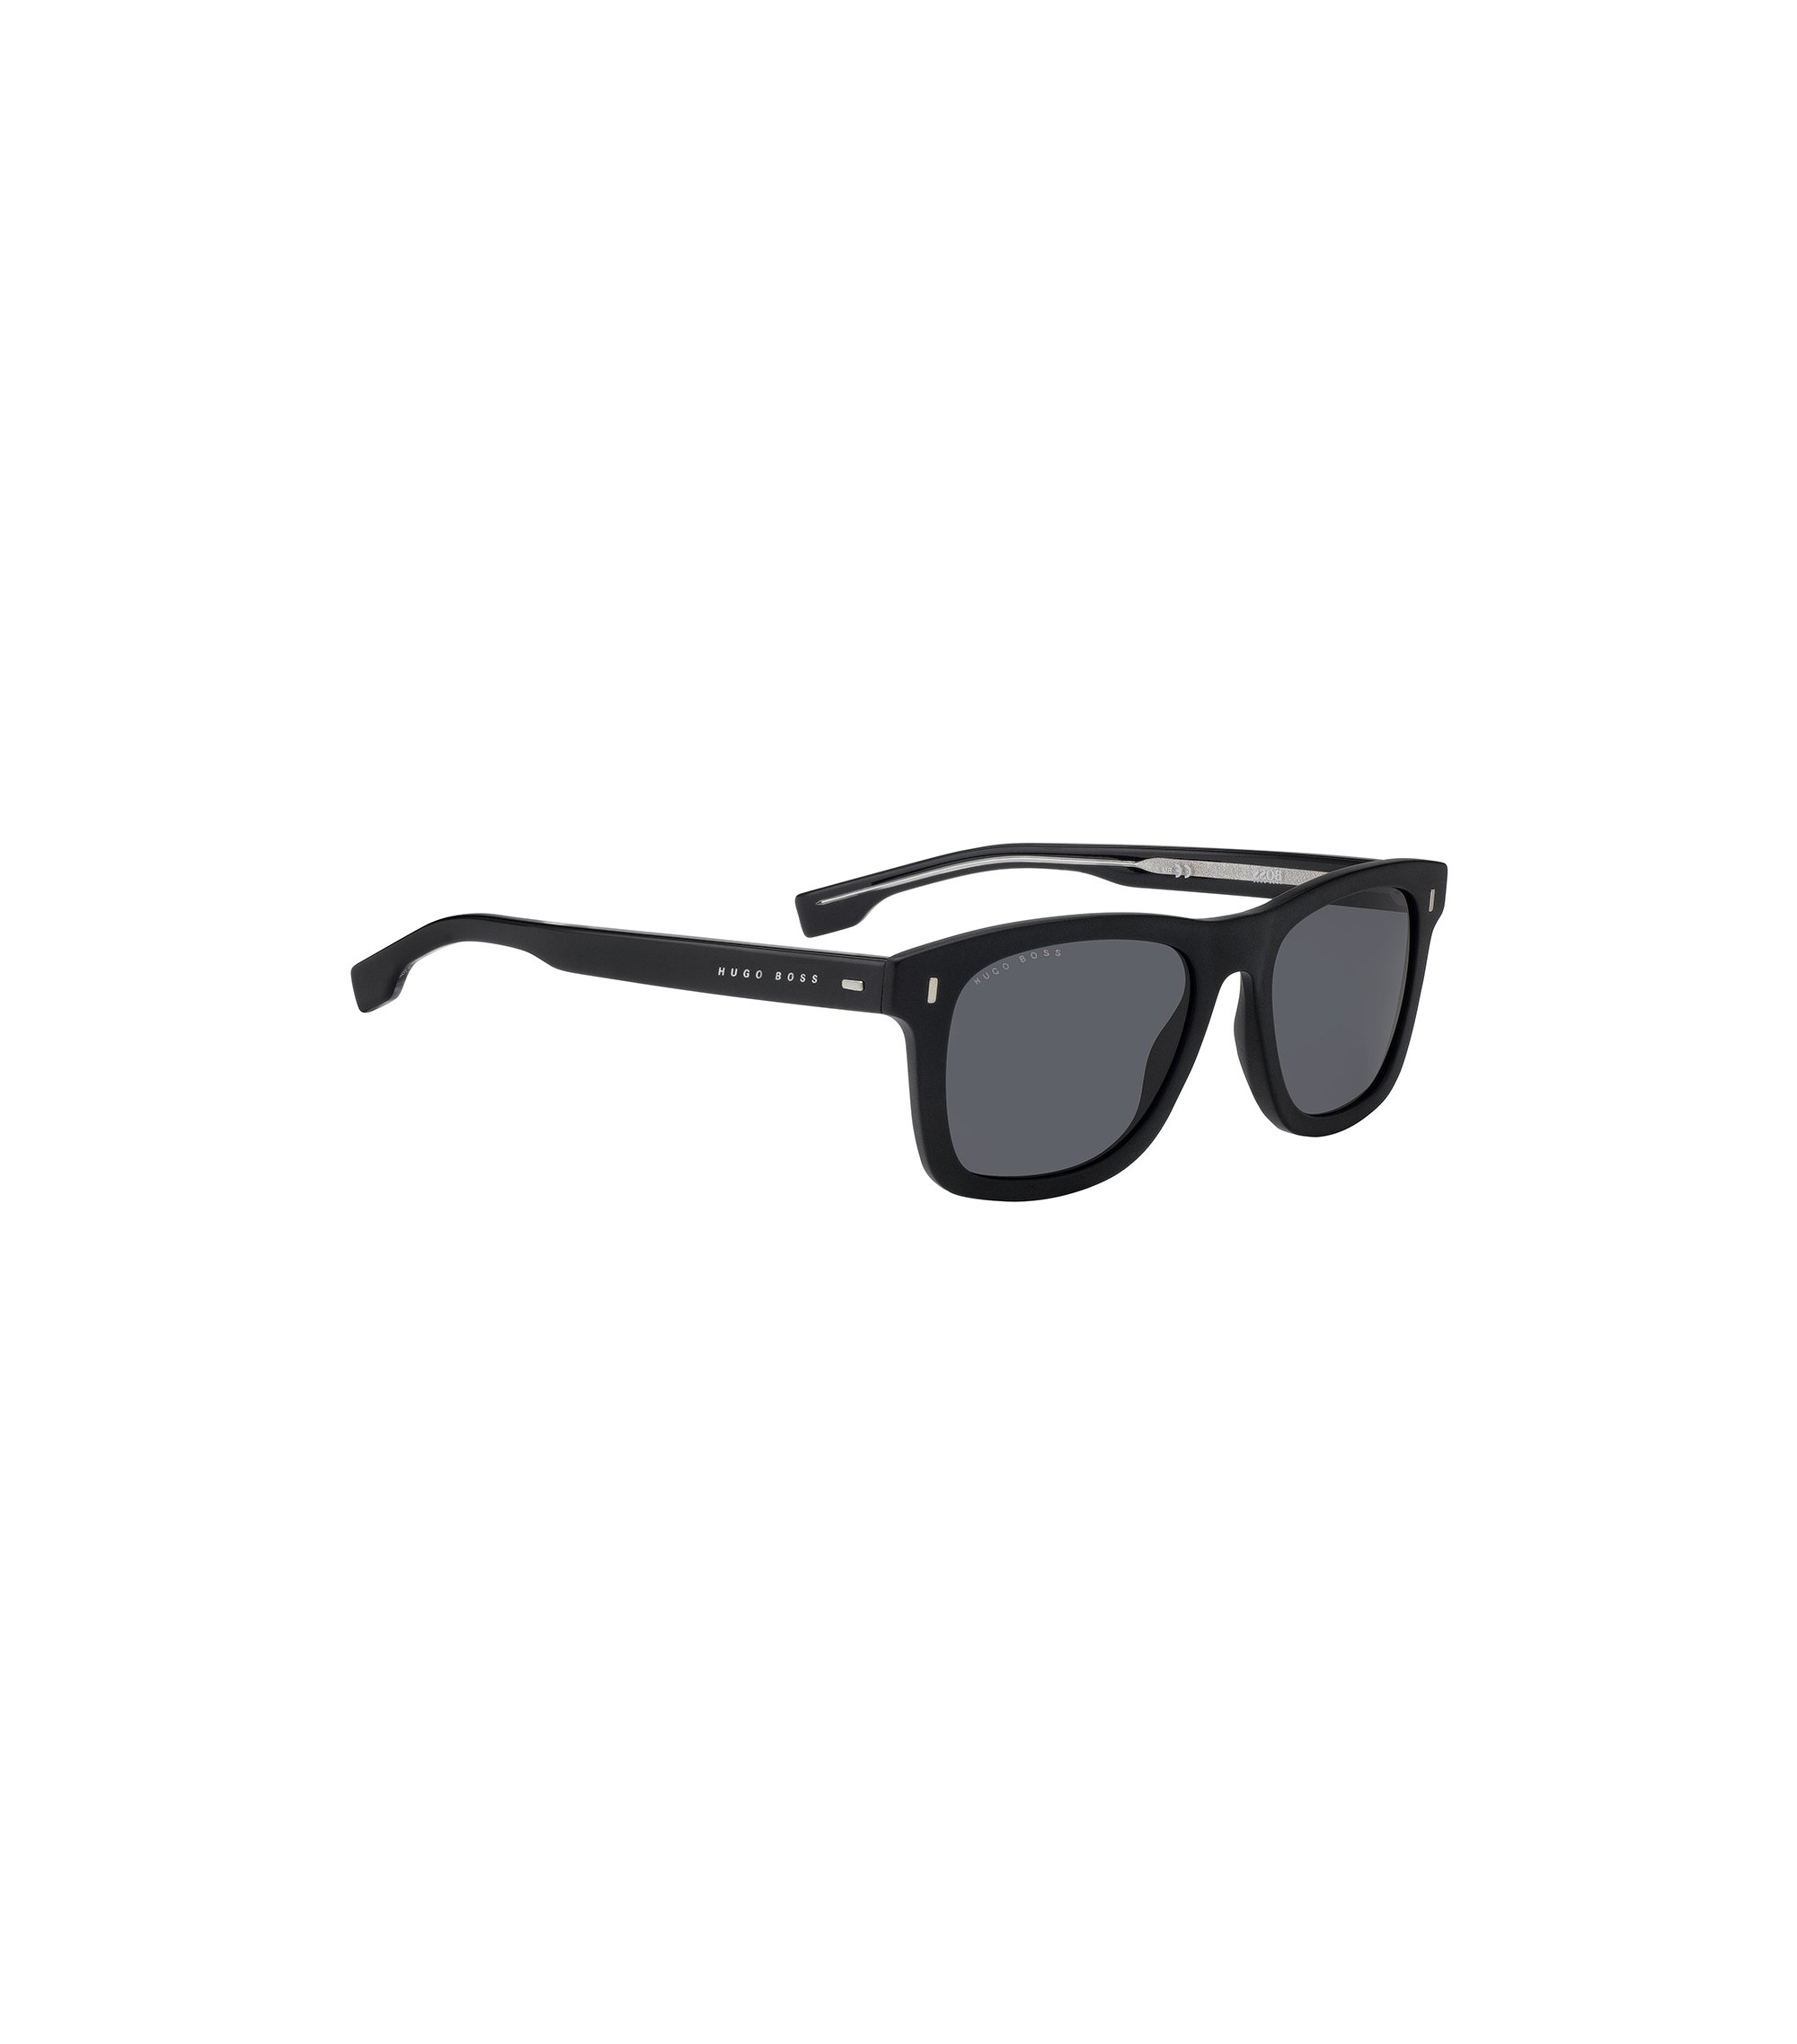 Wayfarer-inspired sunglasses in high-density acetate, Black